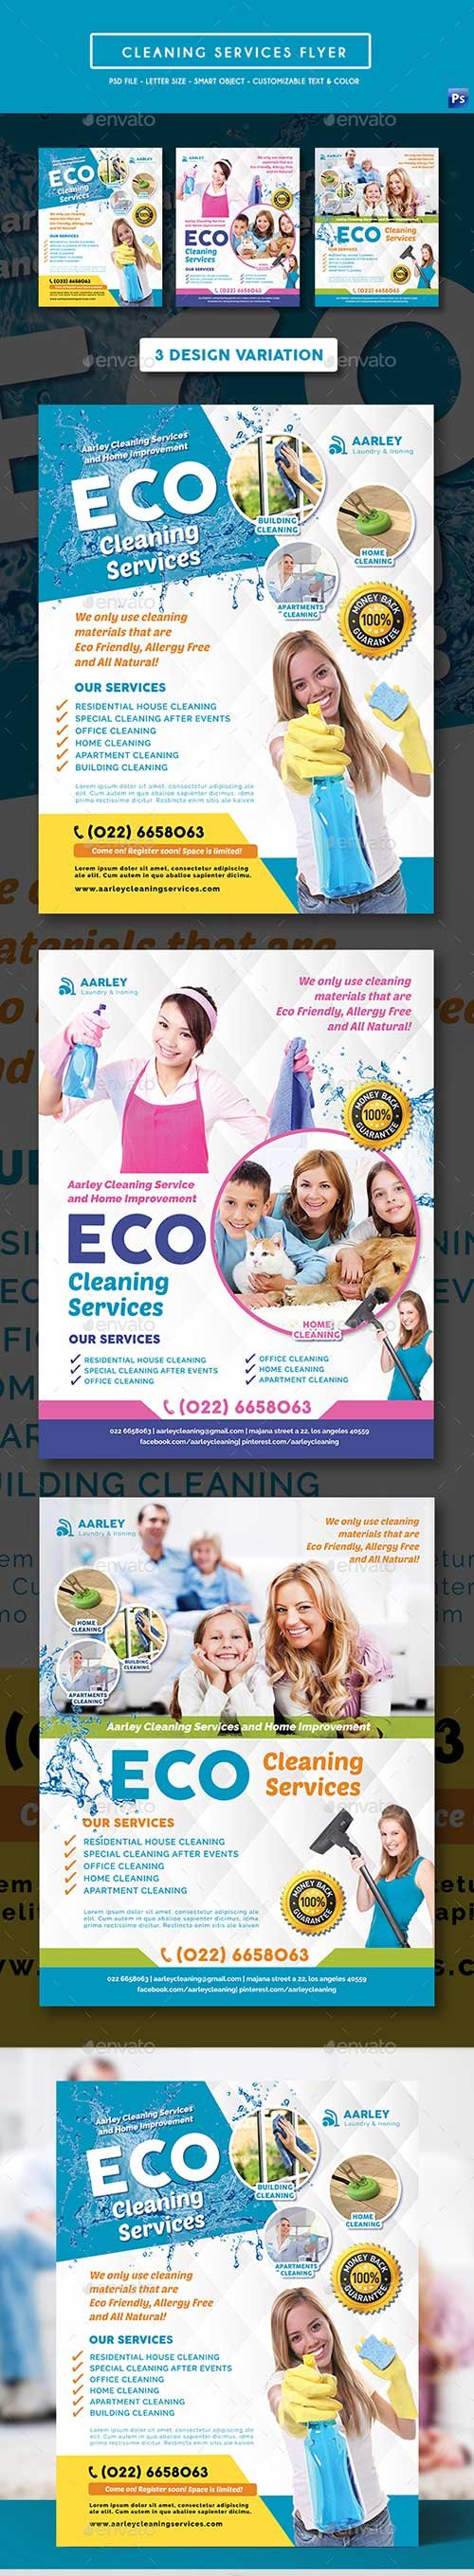 GR - Cleaning Services Flyer 19585464